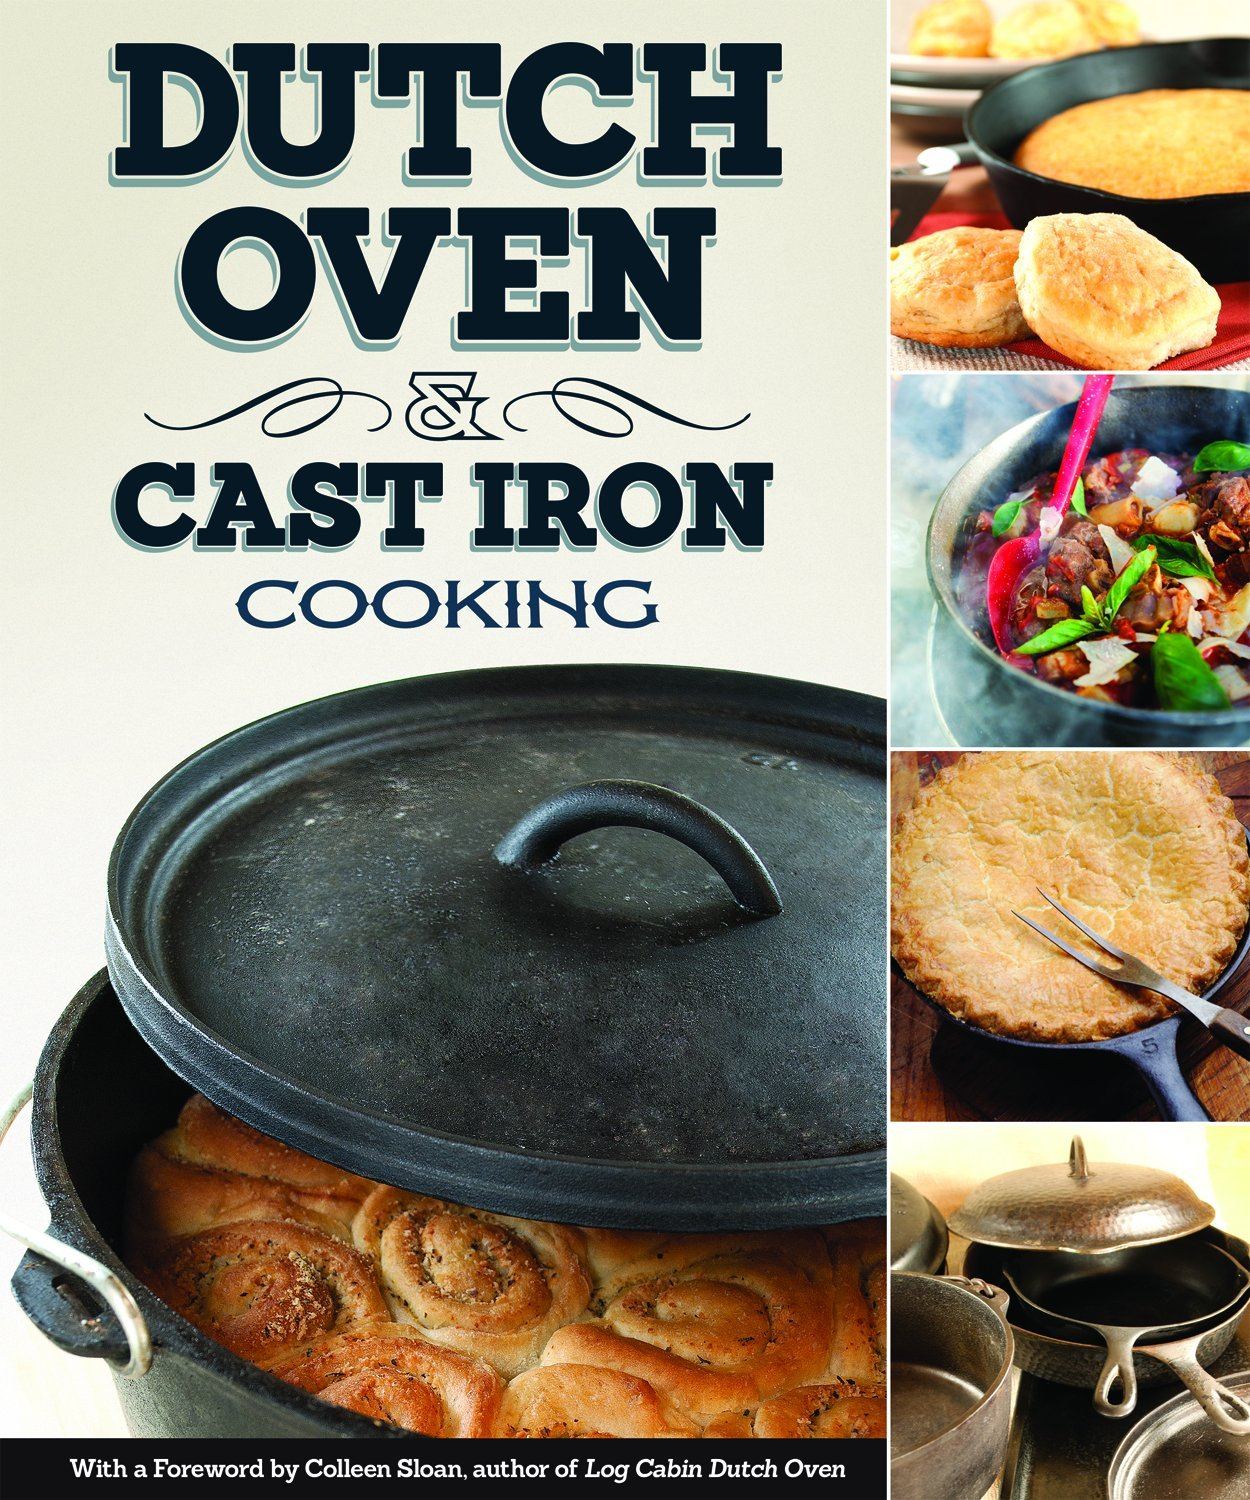 Dutch Oven Cast Iron Cooking Couch Peg 9781565238176 Amazon